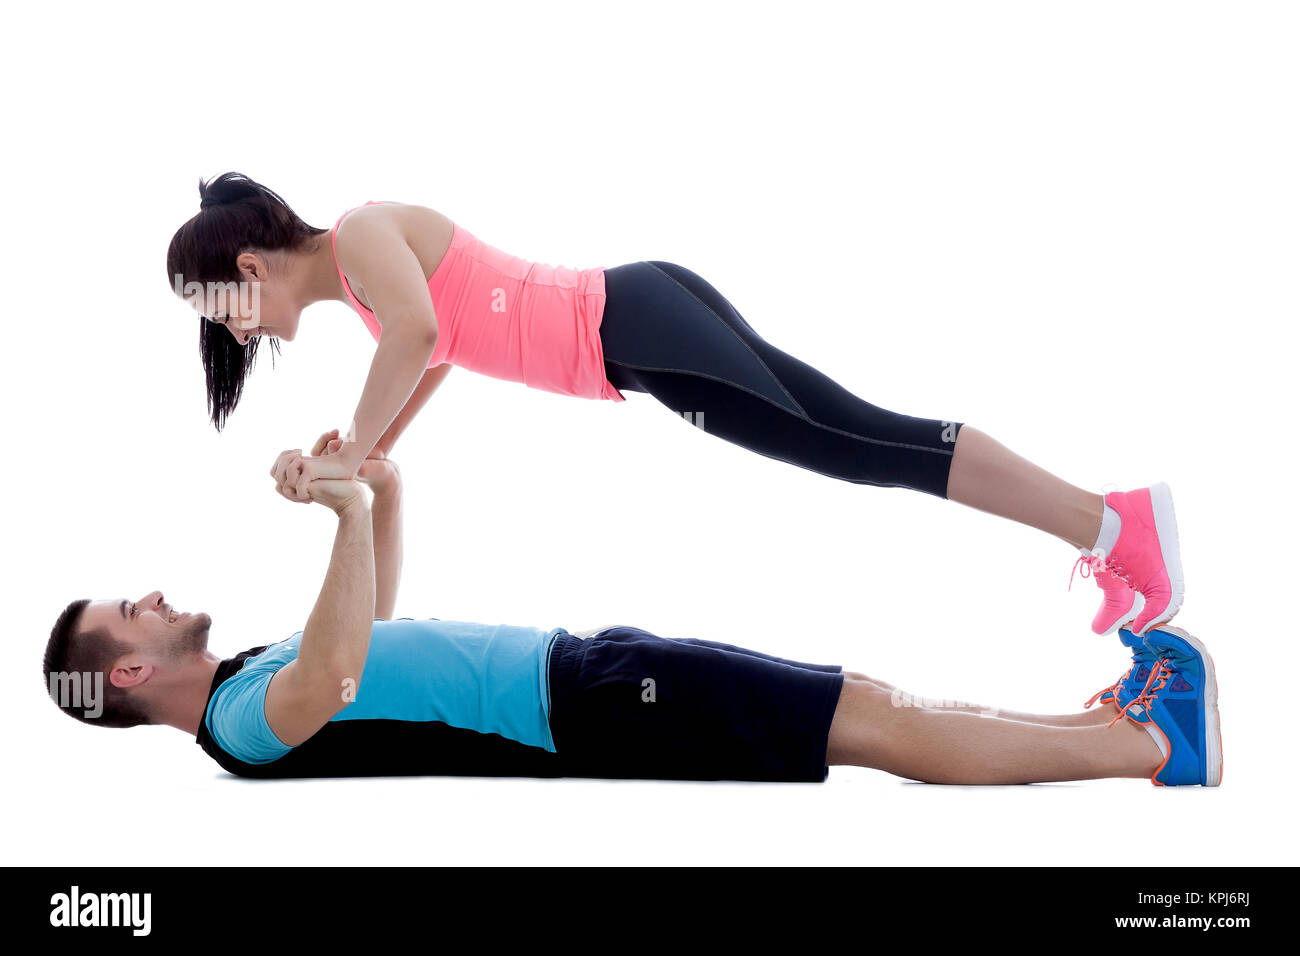 Face to face push-ups - Stock Image